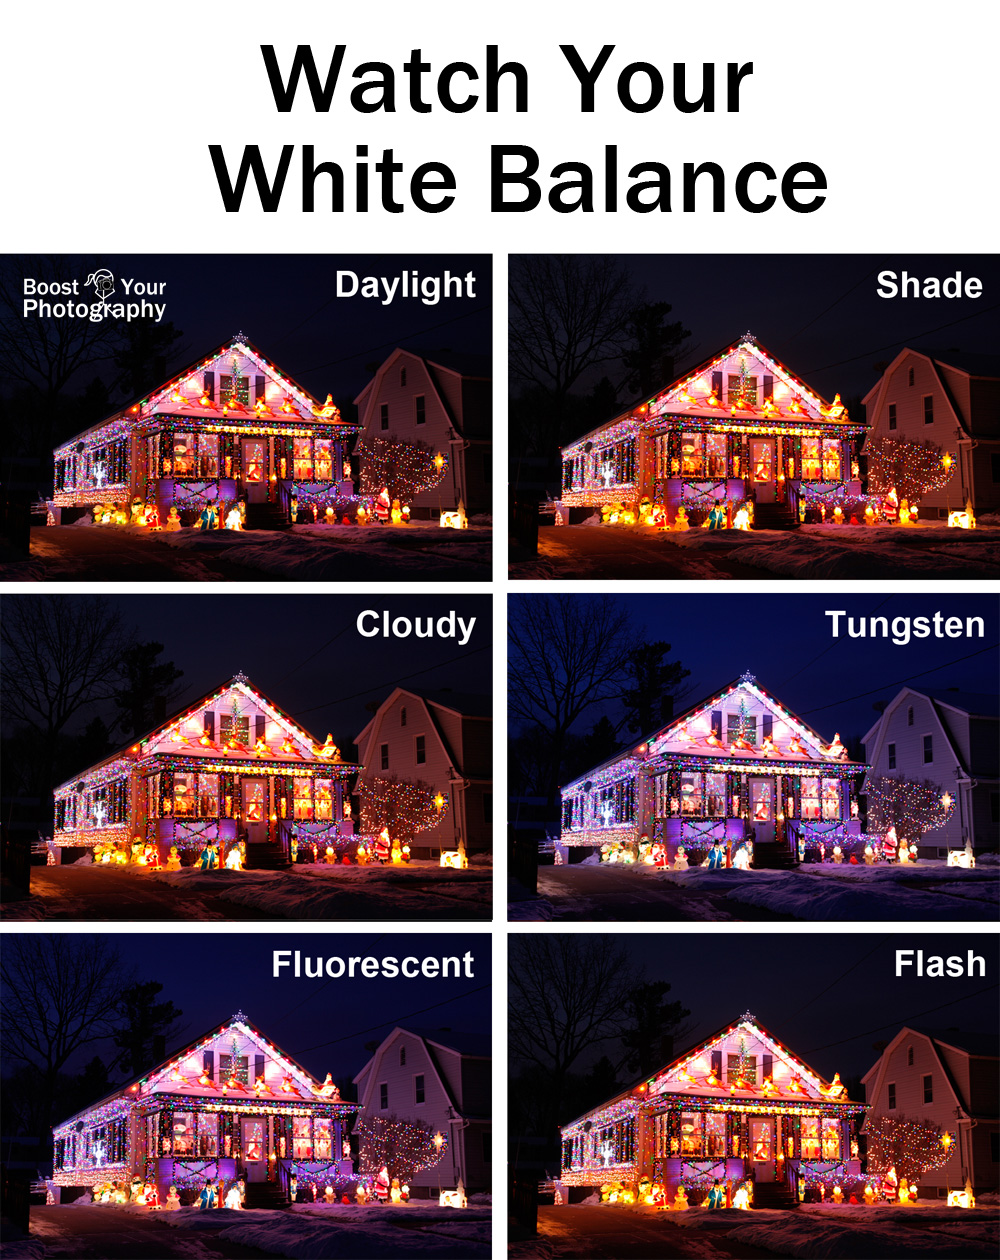 Watch Your White Balance with Holiday Lights | Boost Your Photography